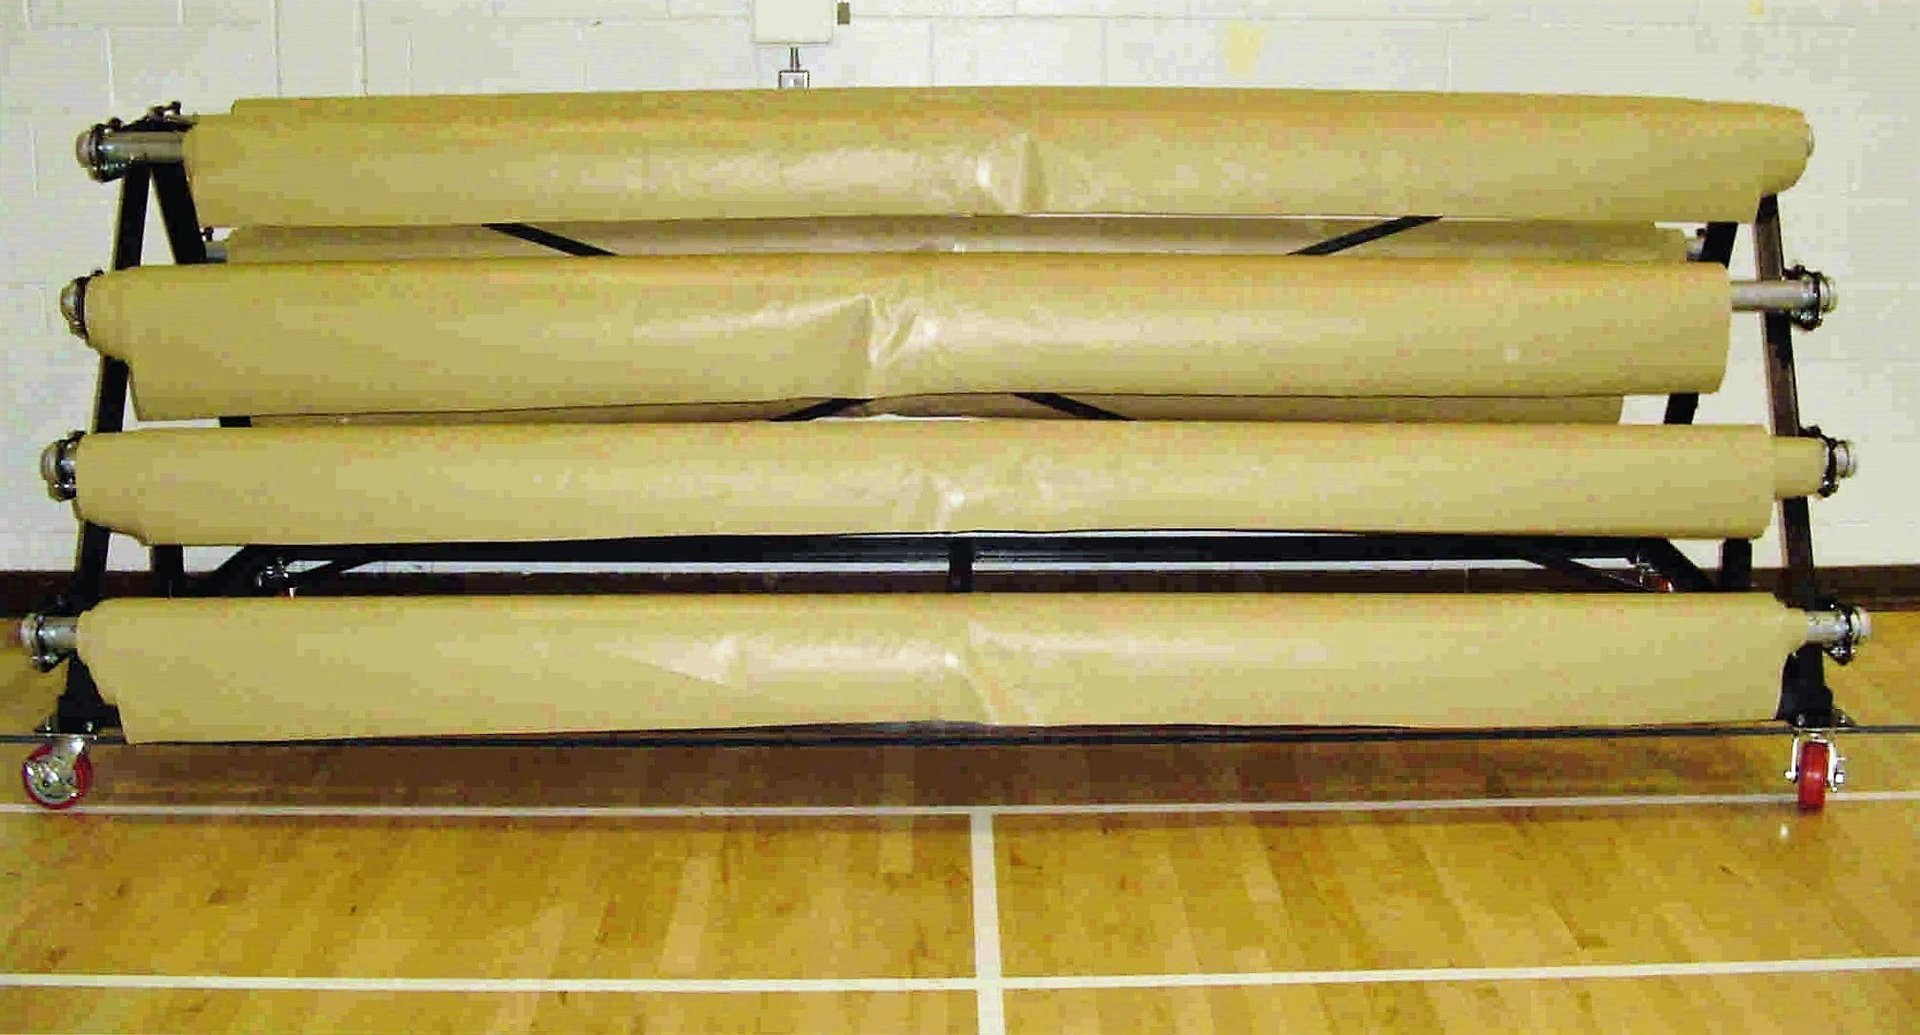 COVER-TECH PROTECTIVE GYM FLOOR COVERS